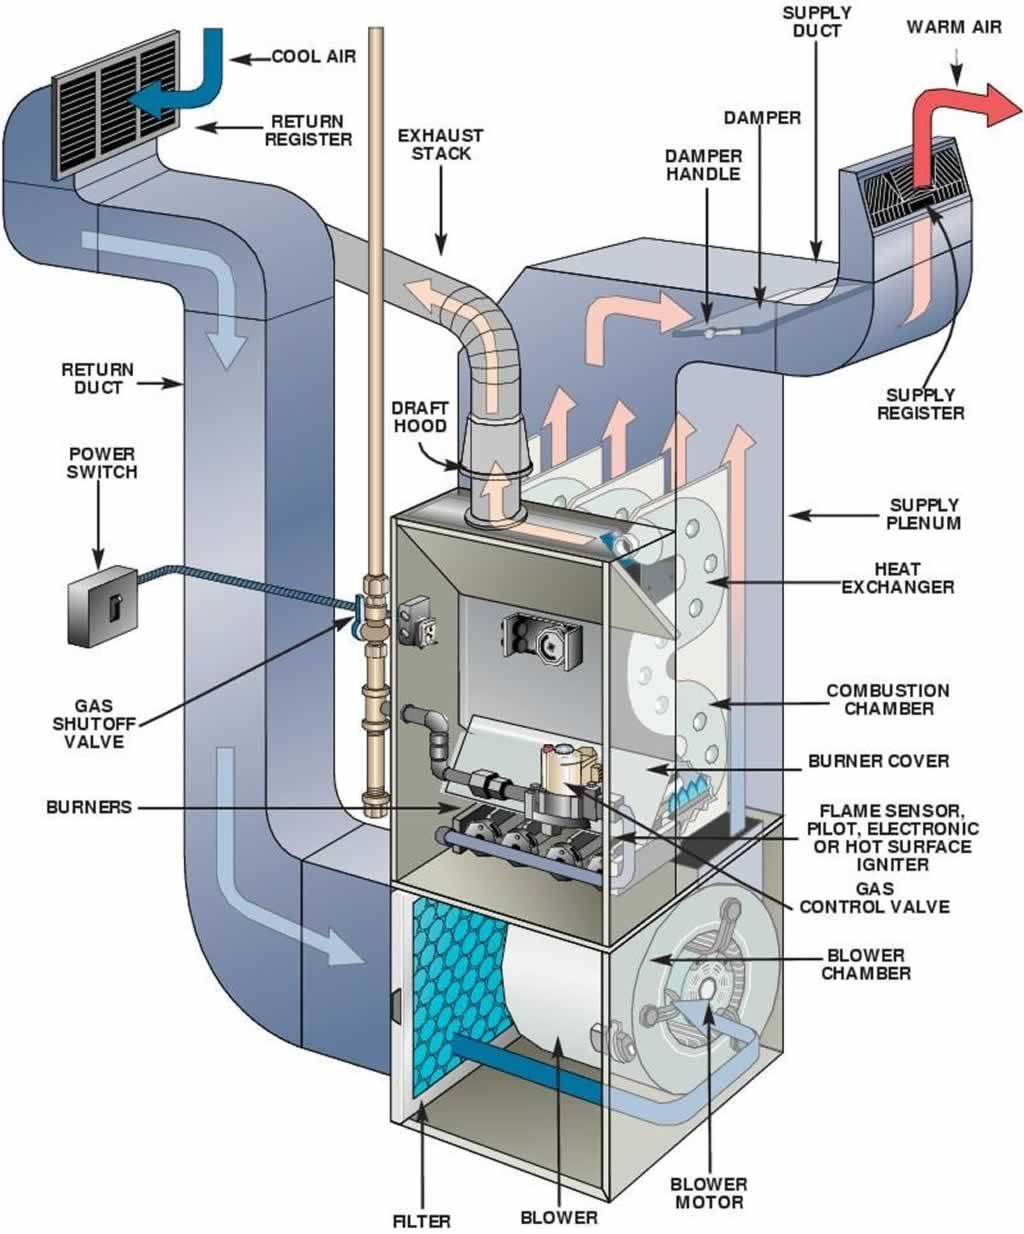 small resolution of 5 ultimate facts you need to know about furnaces furnace diagram